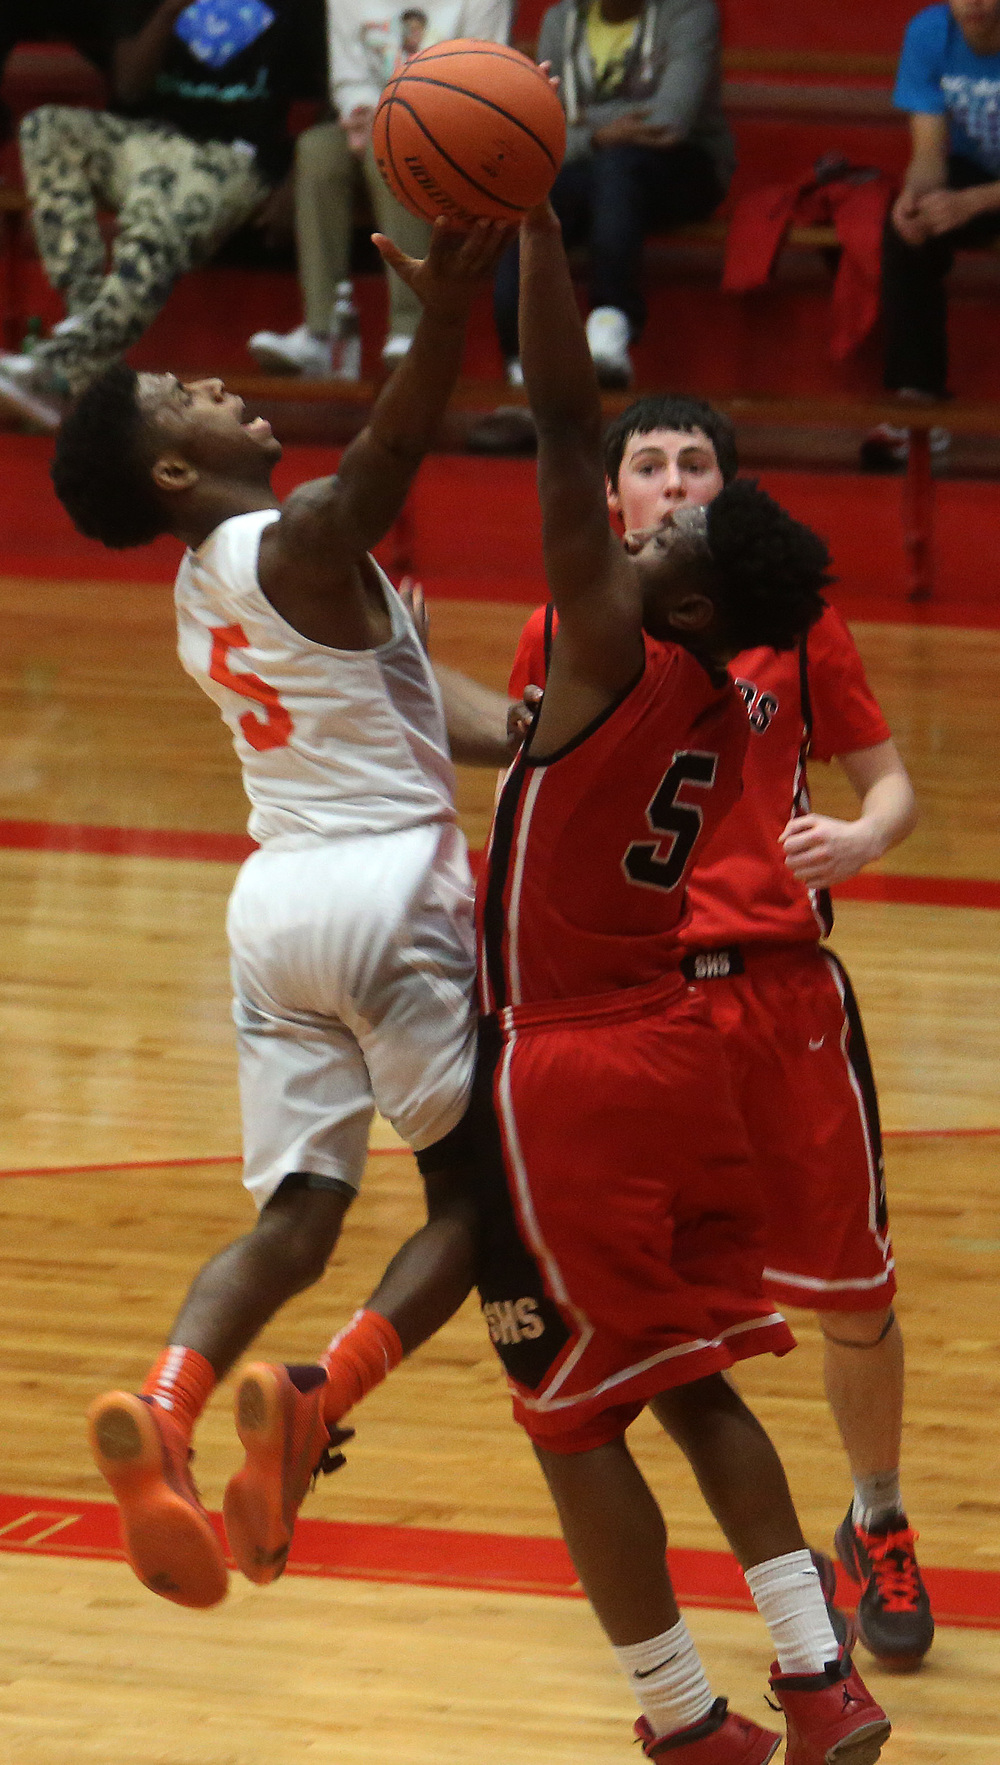 Lanphier's Xavier Bishop puts up two points in the first half. David Spencer/The State Journal Register